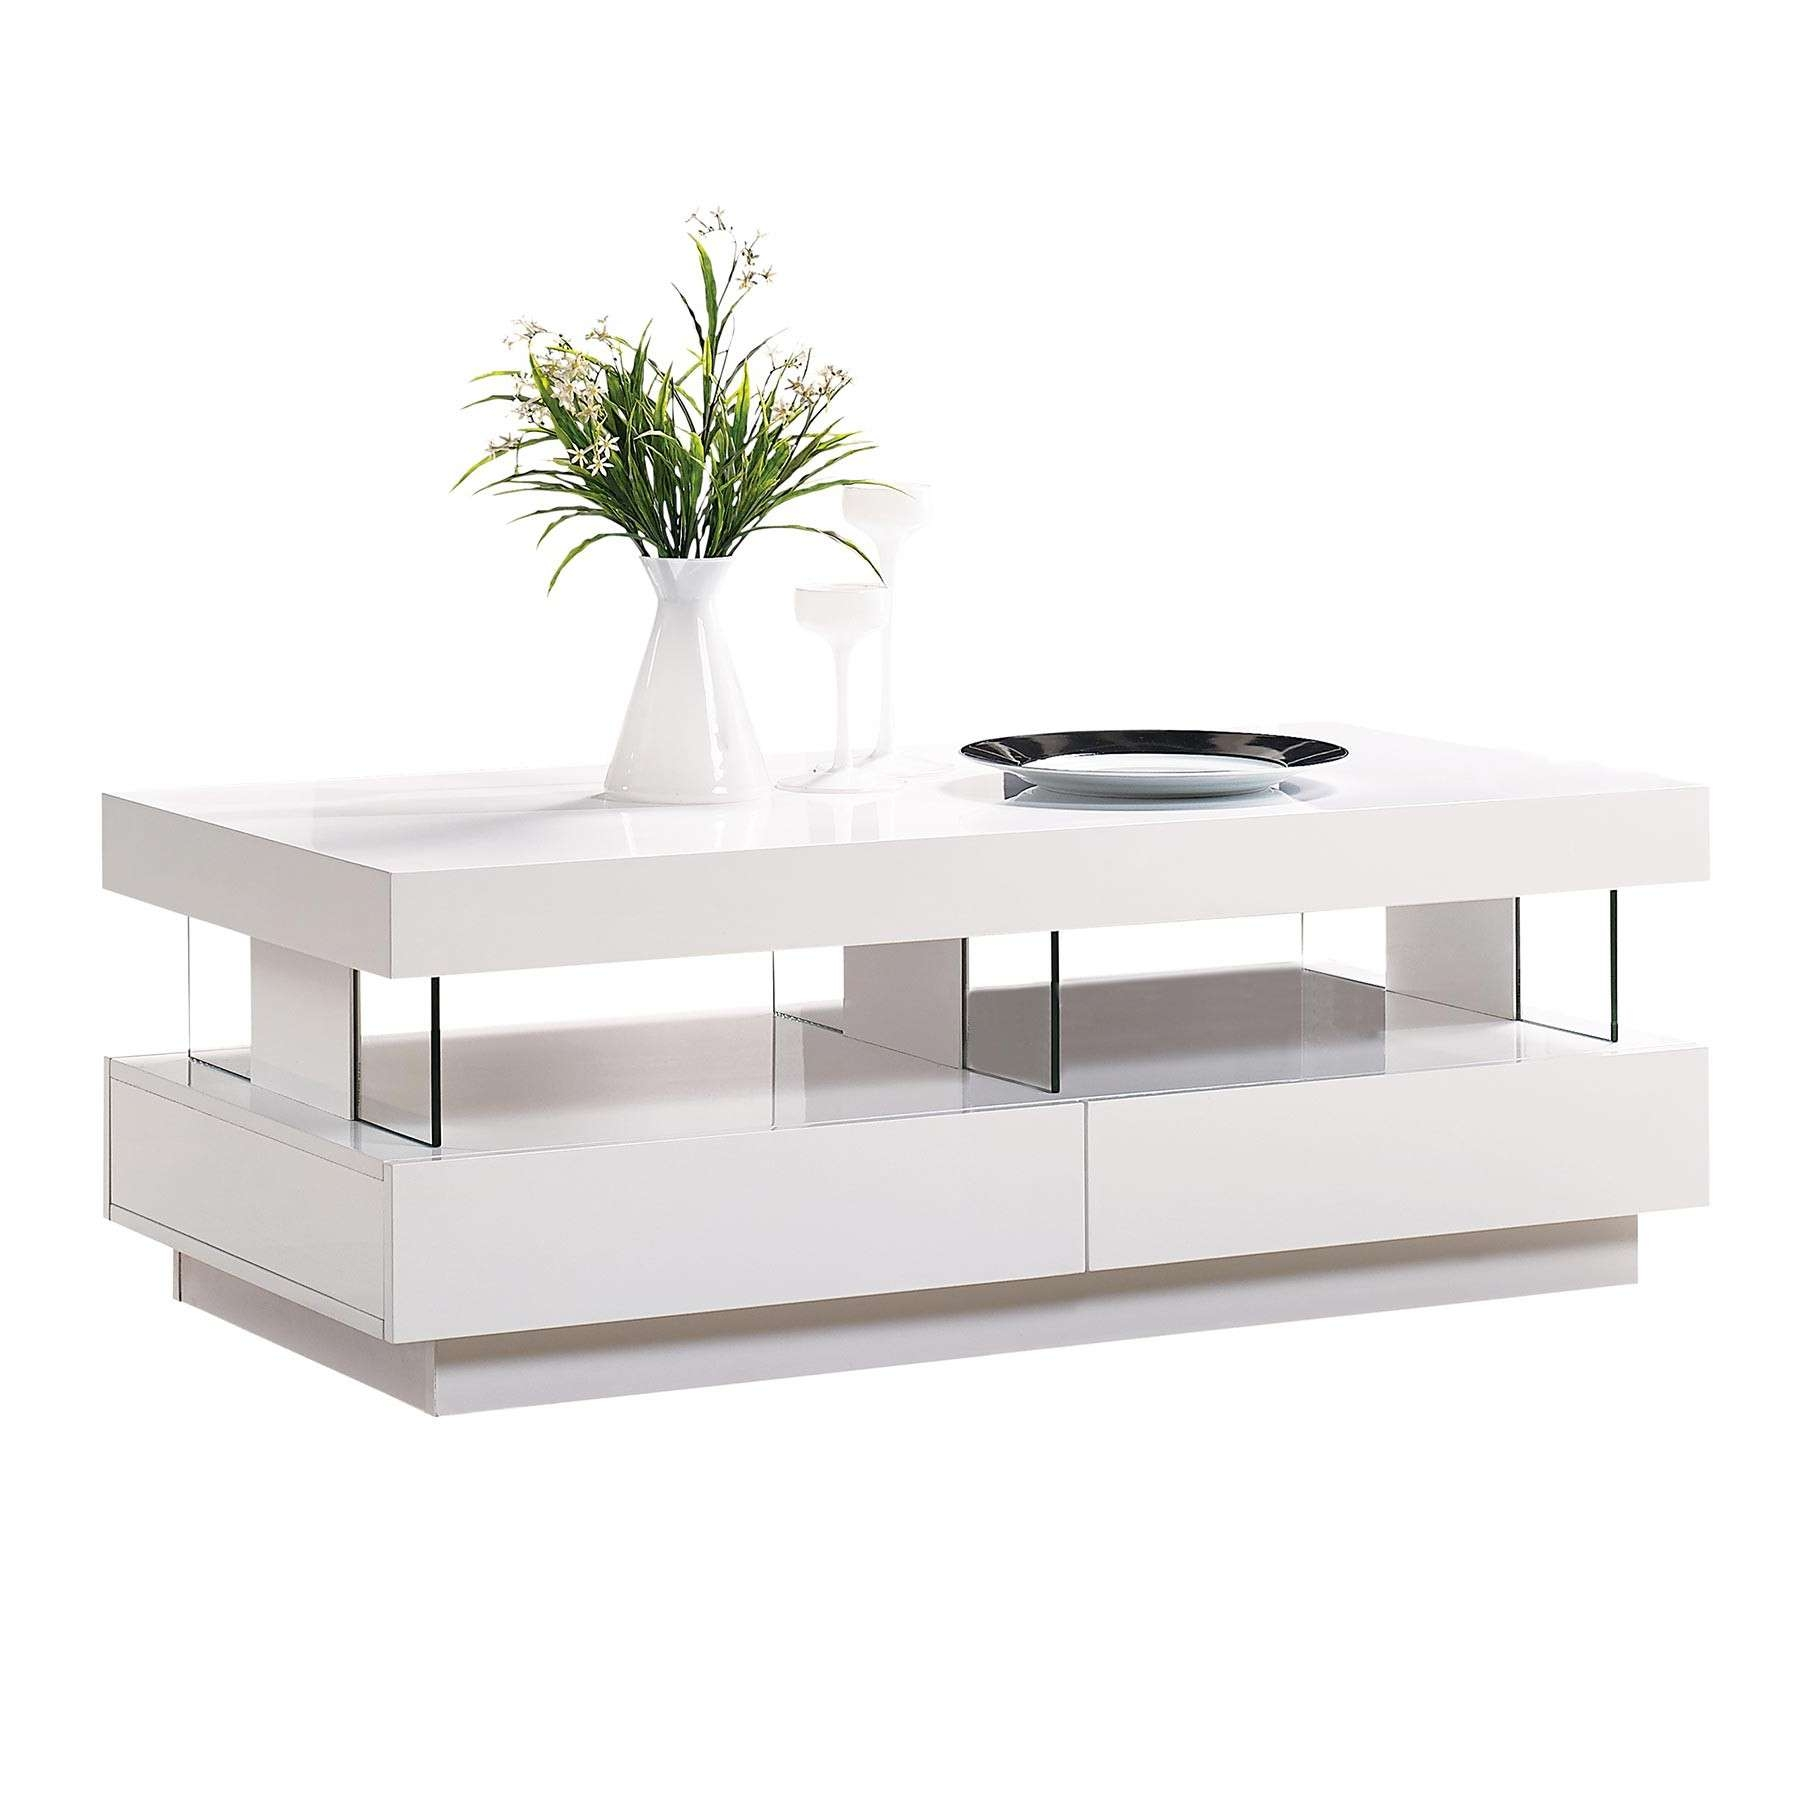 White Gloss Coffee Table Led Light (View 4 of 20)